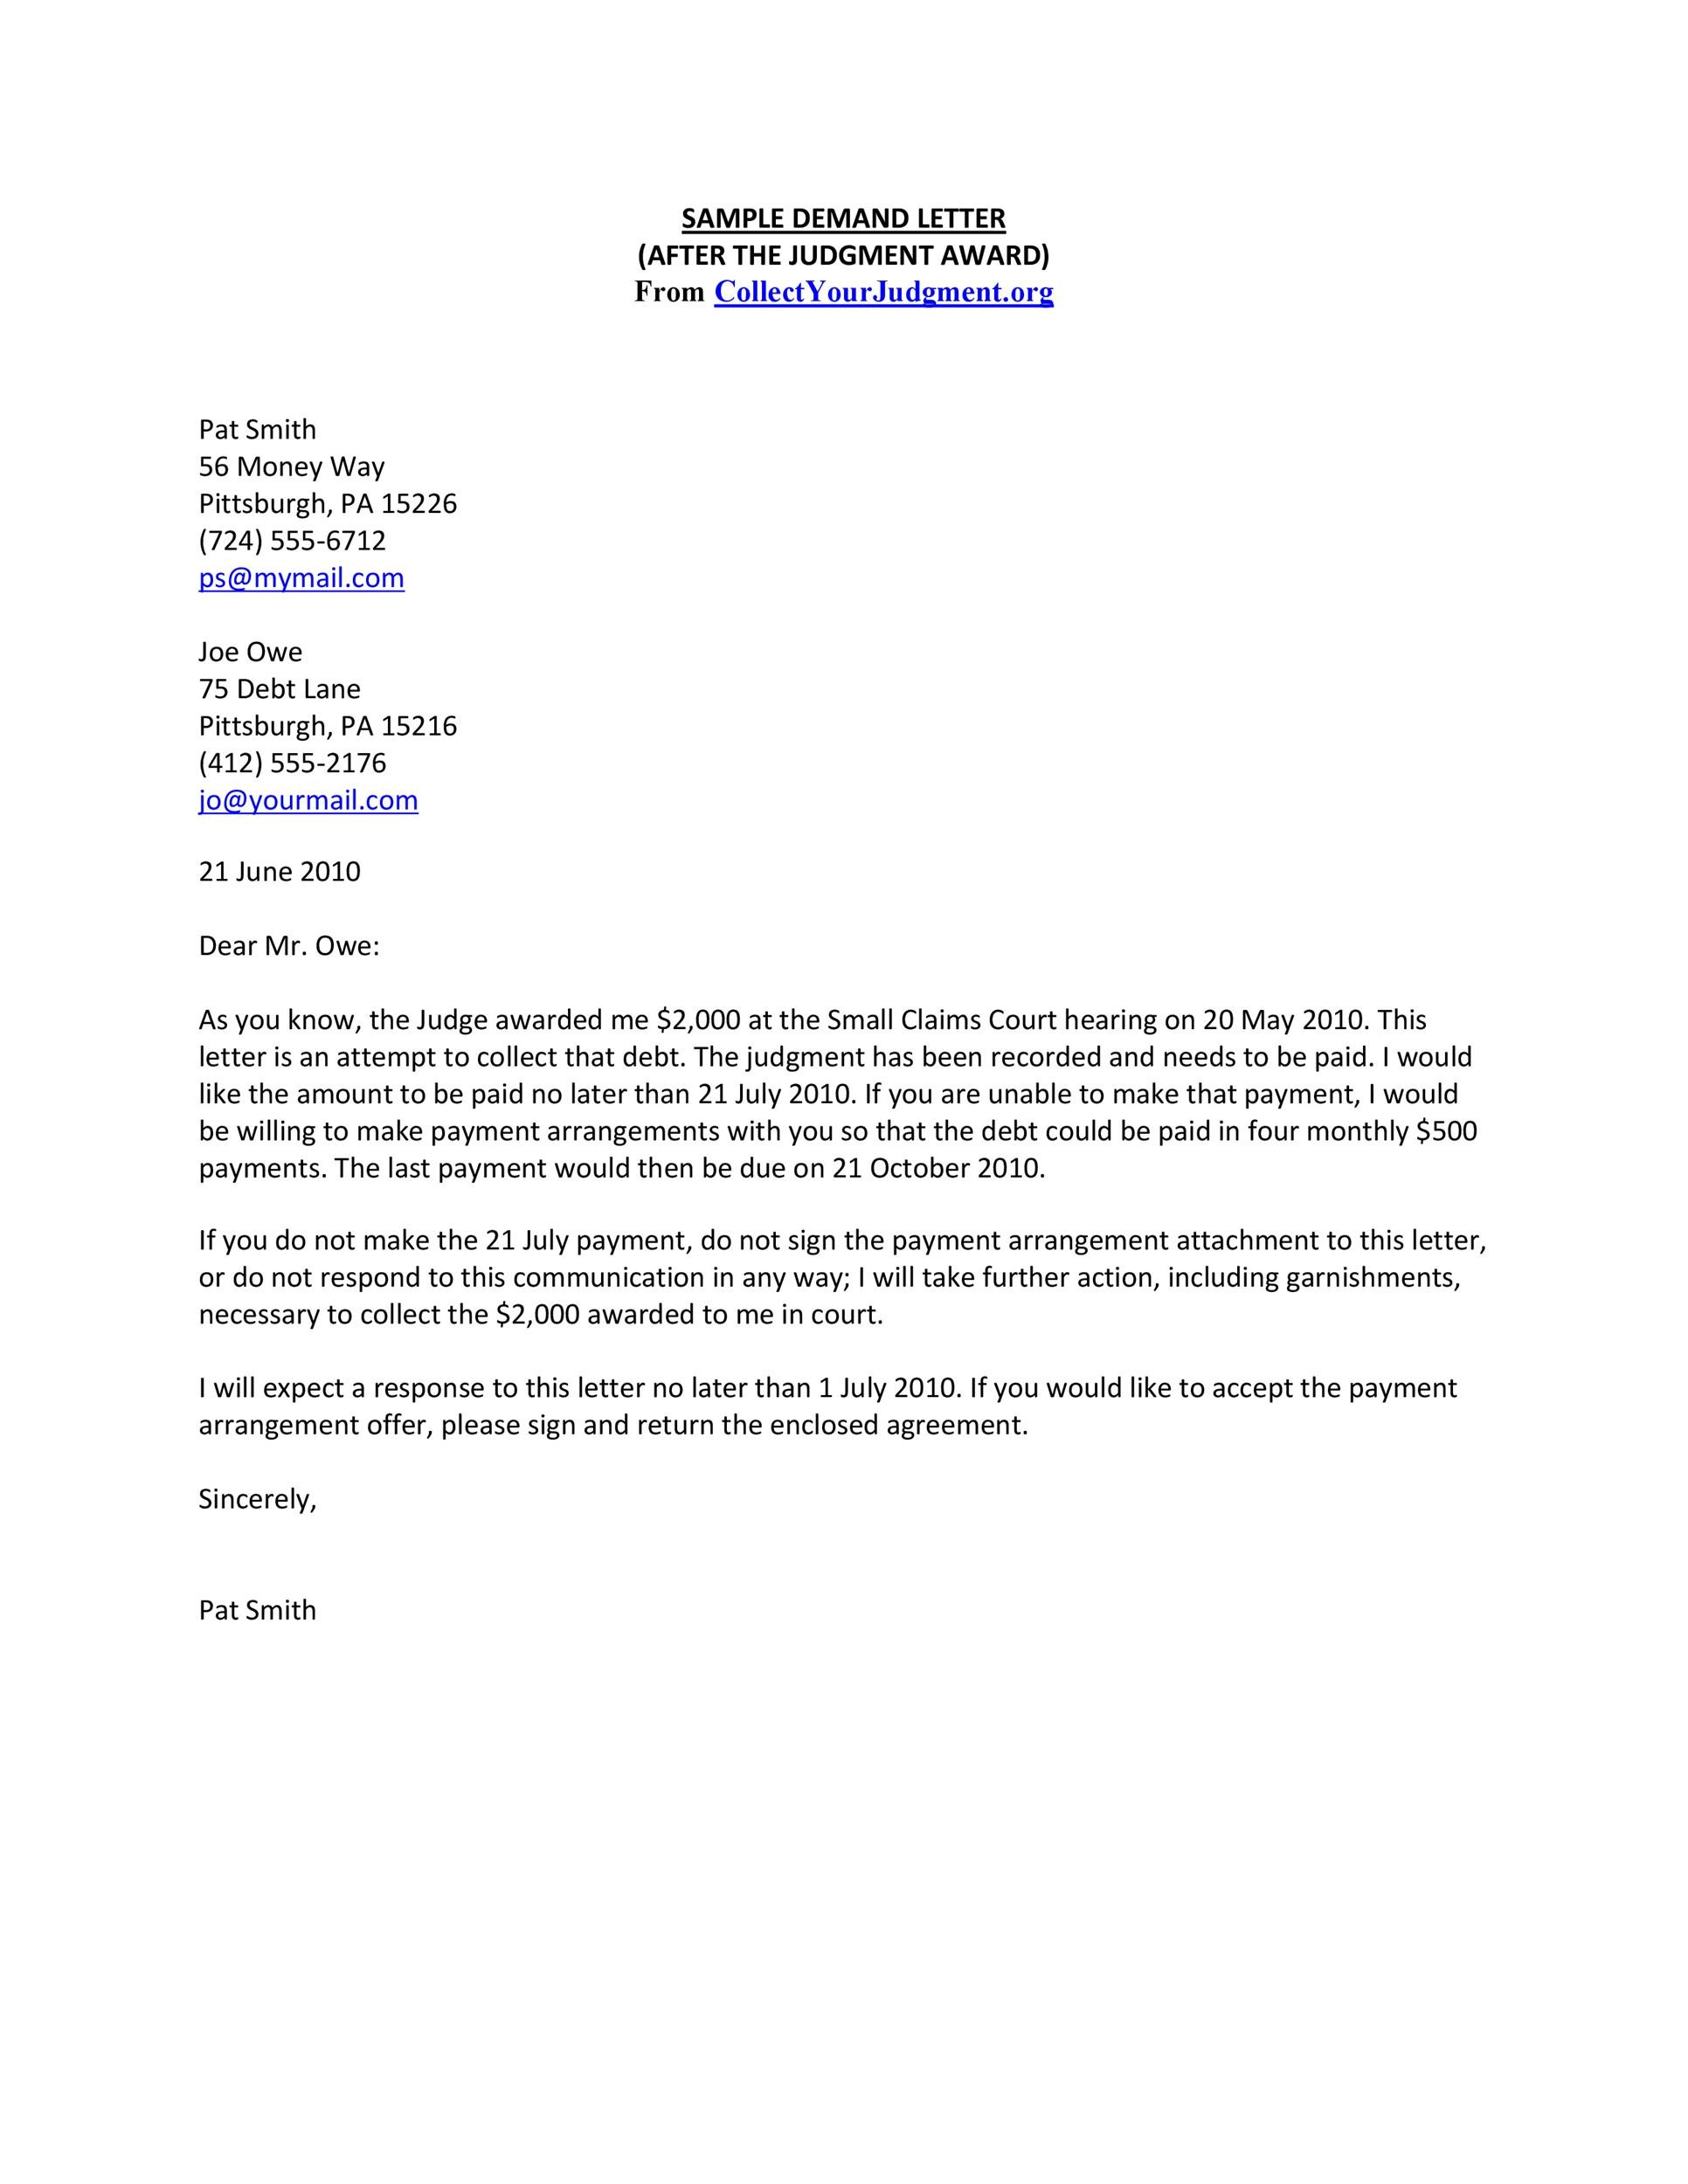 Demand-Letter-Template-04 Salary Demand Letter Template on for suiting companies, for quality, earnest money, insurance company, for injury, editable free, diminished value, for services, don compton book, turning robocalls into cash, free download print, sample security deposit, for damages,